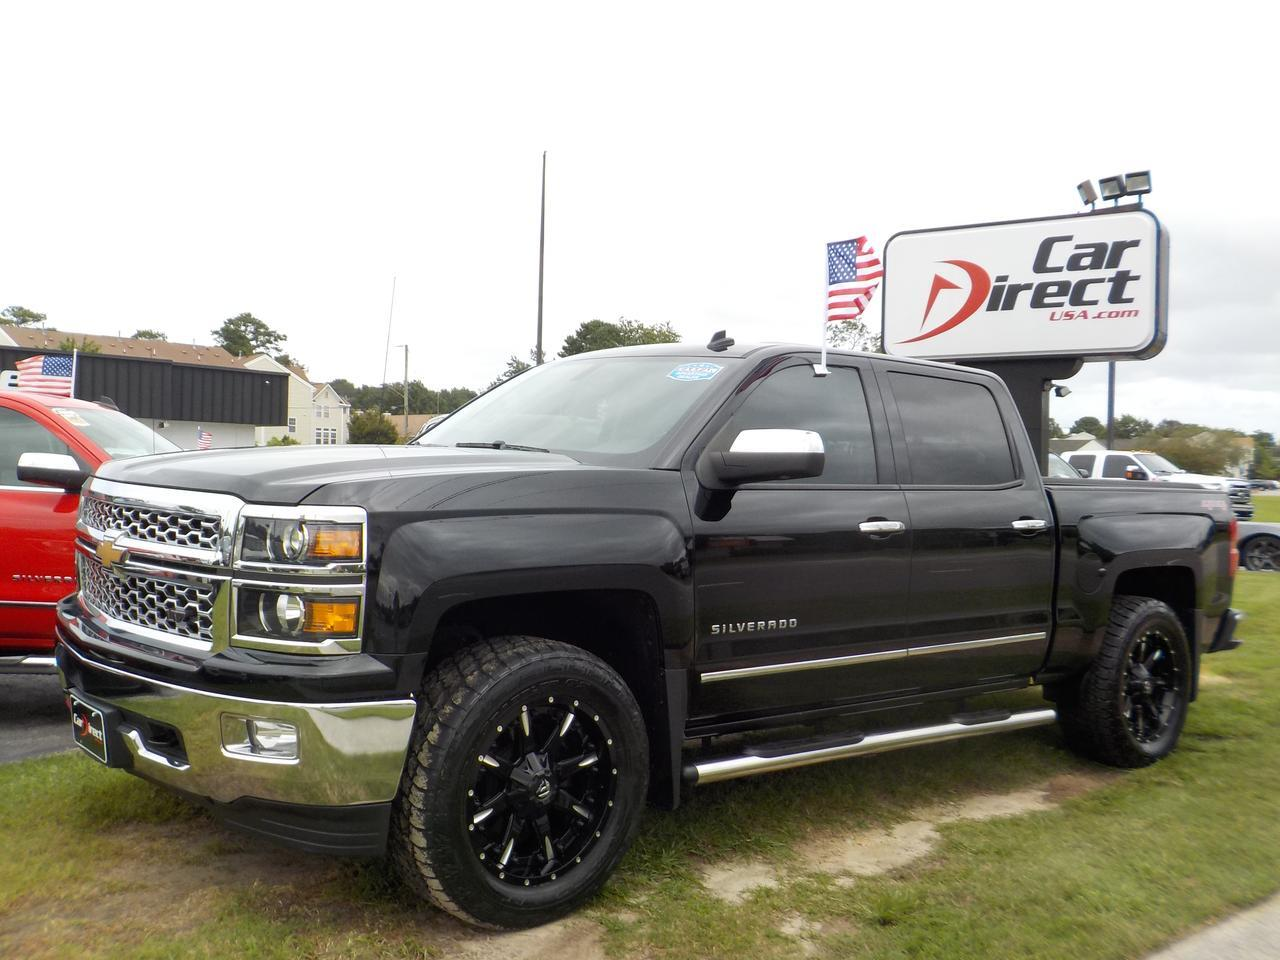 2014 CHEVROLET SILVERADO 1500 LTZ CREW CAB 4X4, LONG BED, BLUETOOTH, REMOTE START, BACKUP CAM, PARKING SENSORS, TOW PKG! Virginia Beach VA